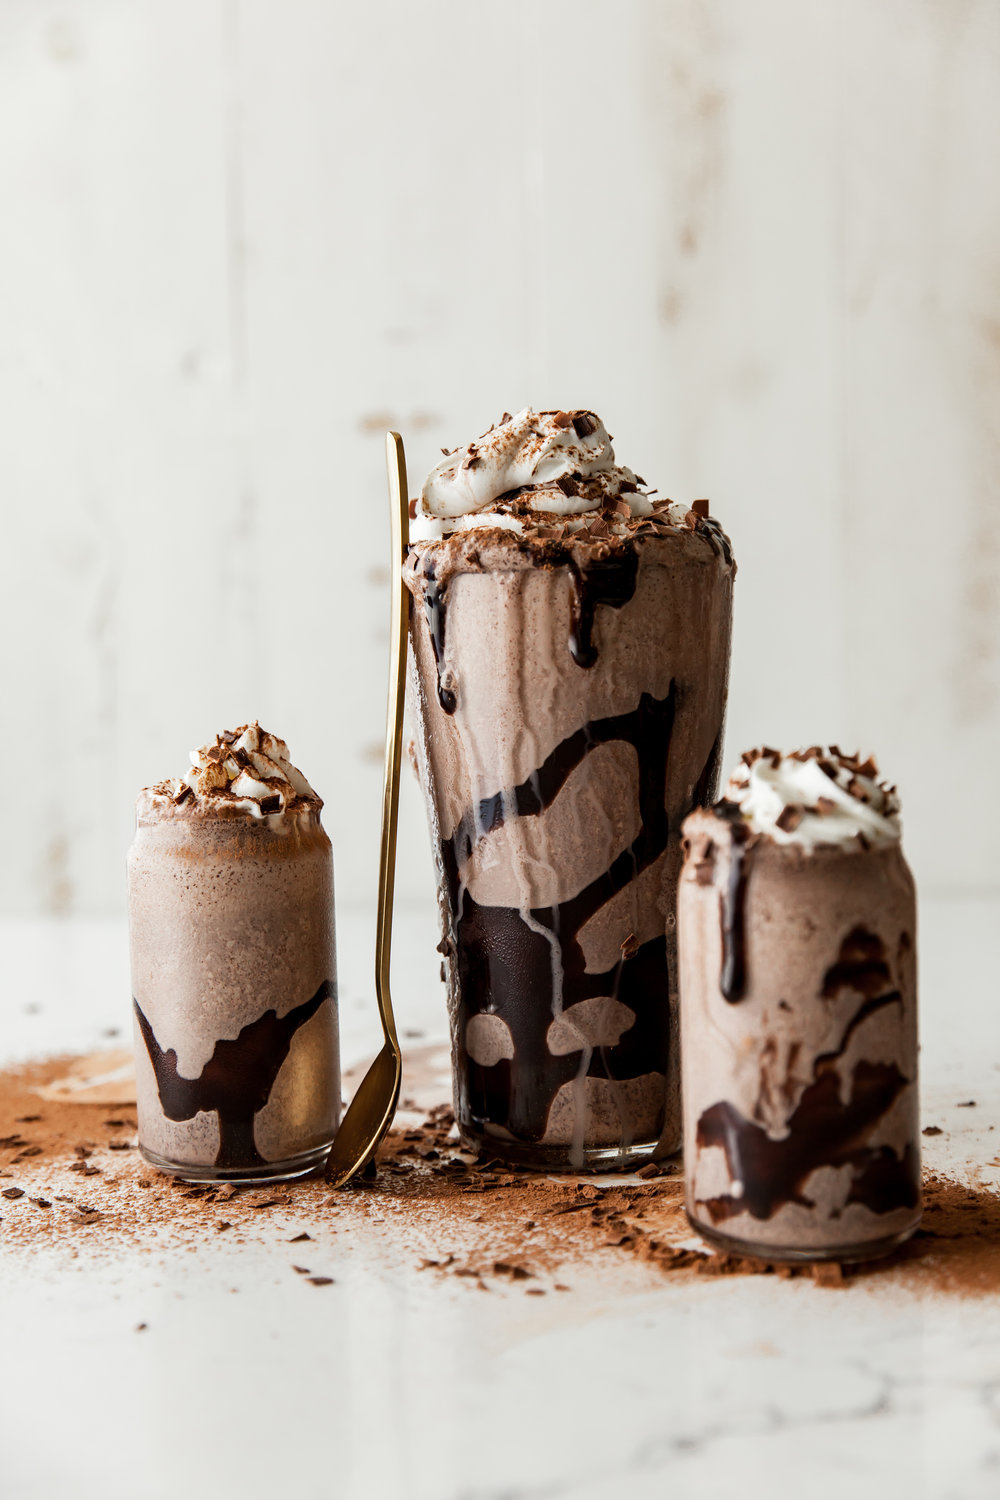 SWEET & SALTY SHAKE  4 parts vanilla or chocolate ice cream; 2 parts milk; 1 part Dorda Sea Salt Caramel  Method: Blend ingredients together. Top with chocolate syrup, whipped cream and garnish.